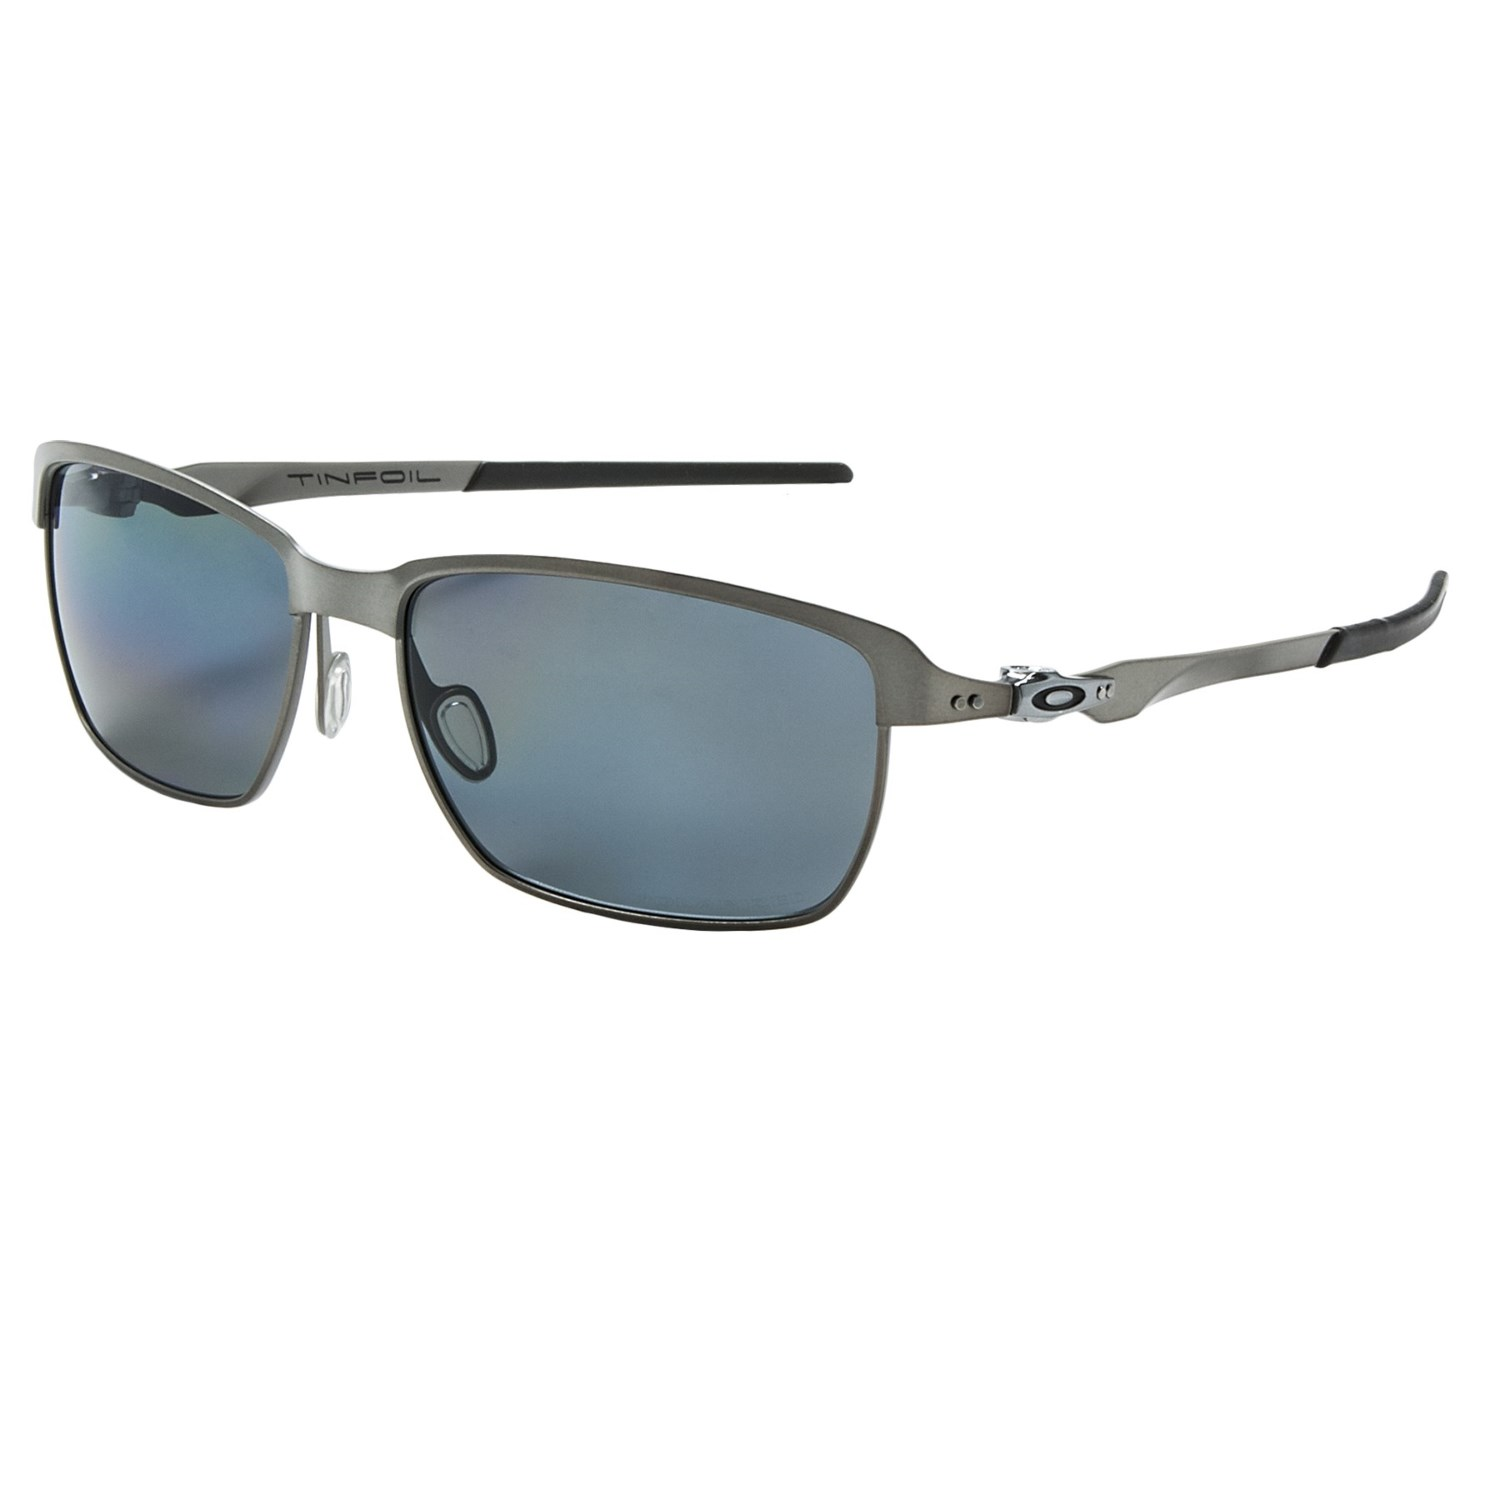 0ebb9be3fa0 What Are The Best Oakley Sunglasses For Baseball « Heritage Malta